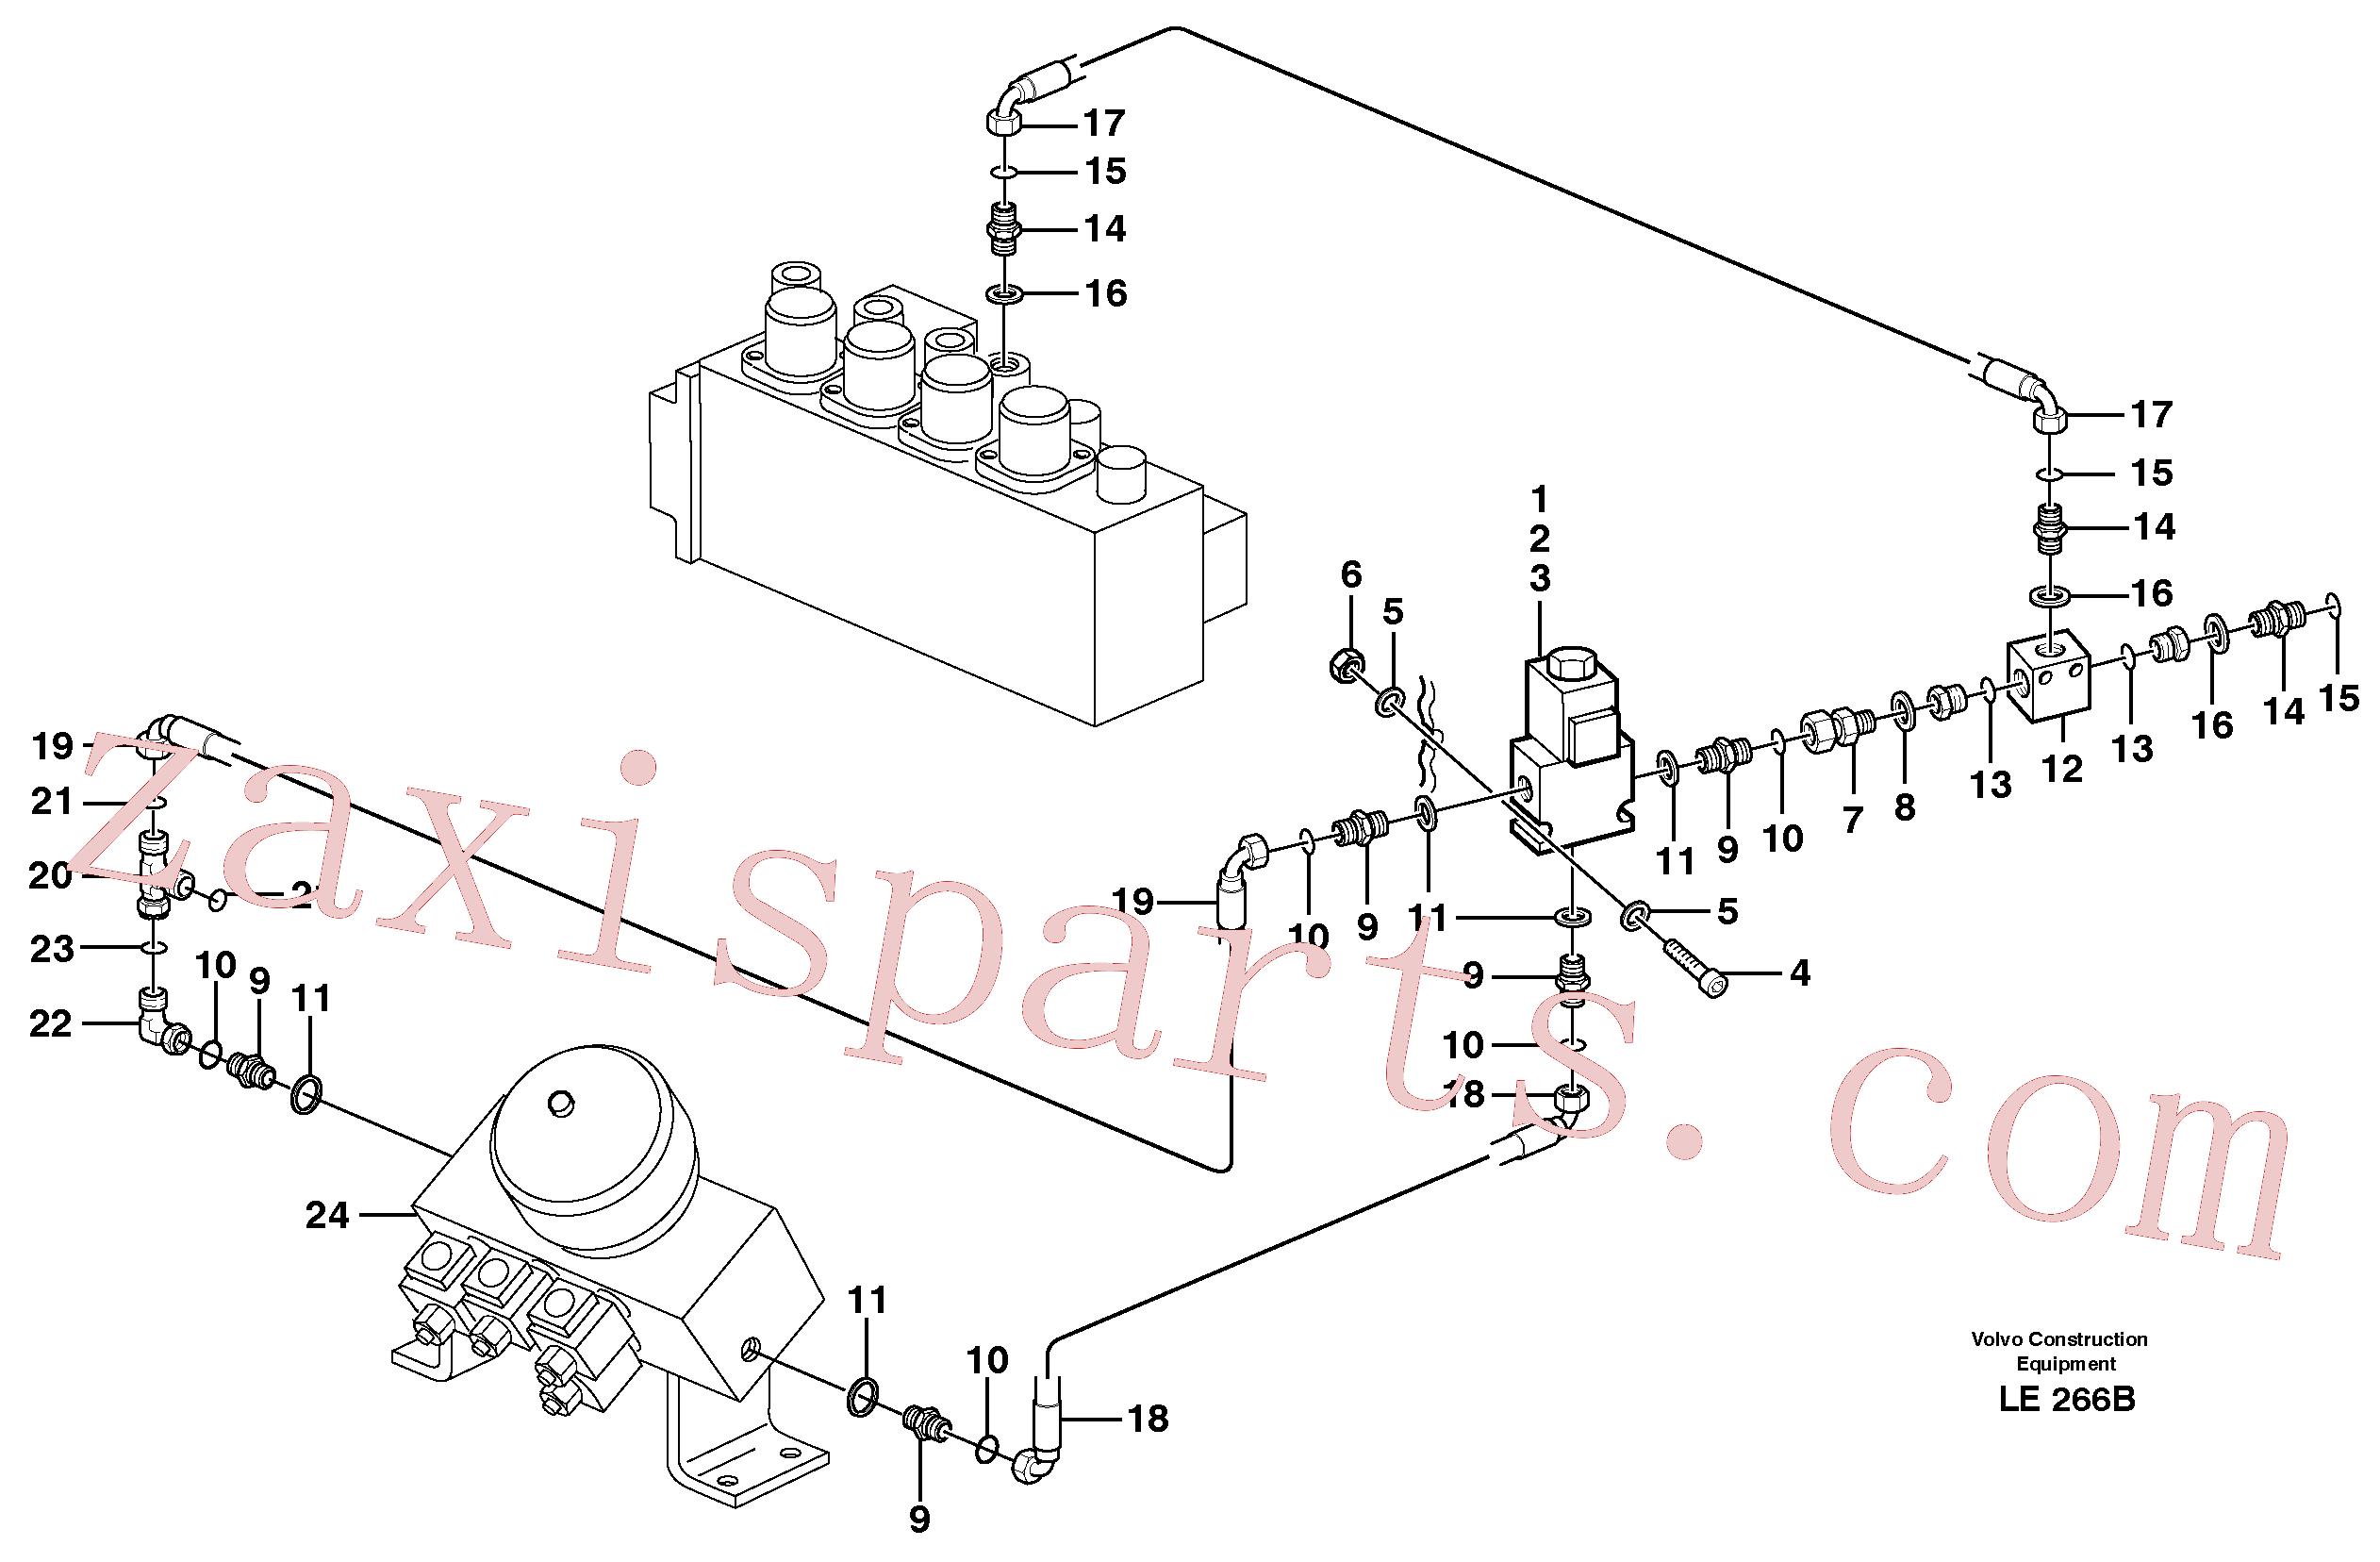 VOE11706826 for Volvo Hammer control(LE266B assembly)